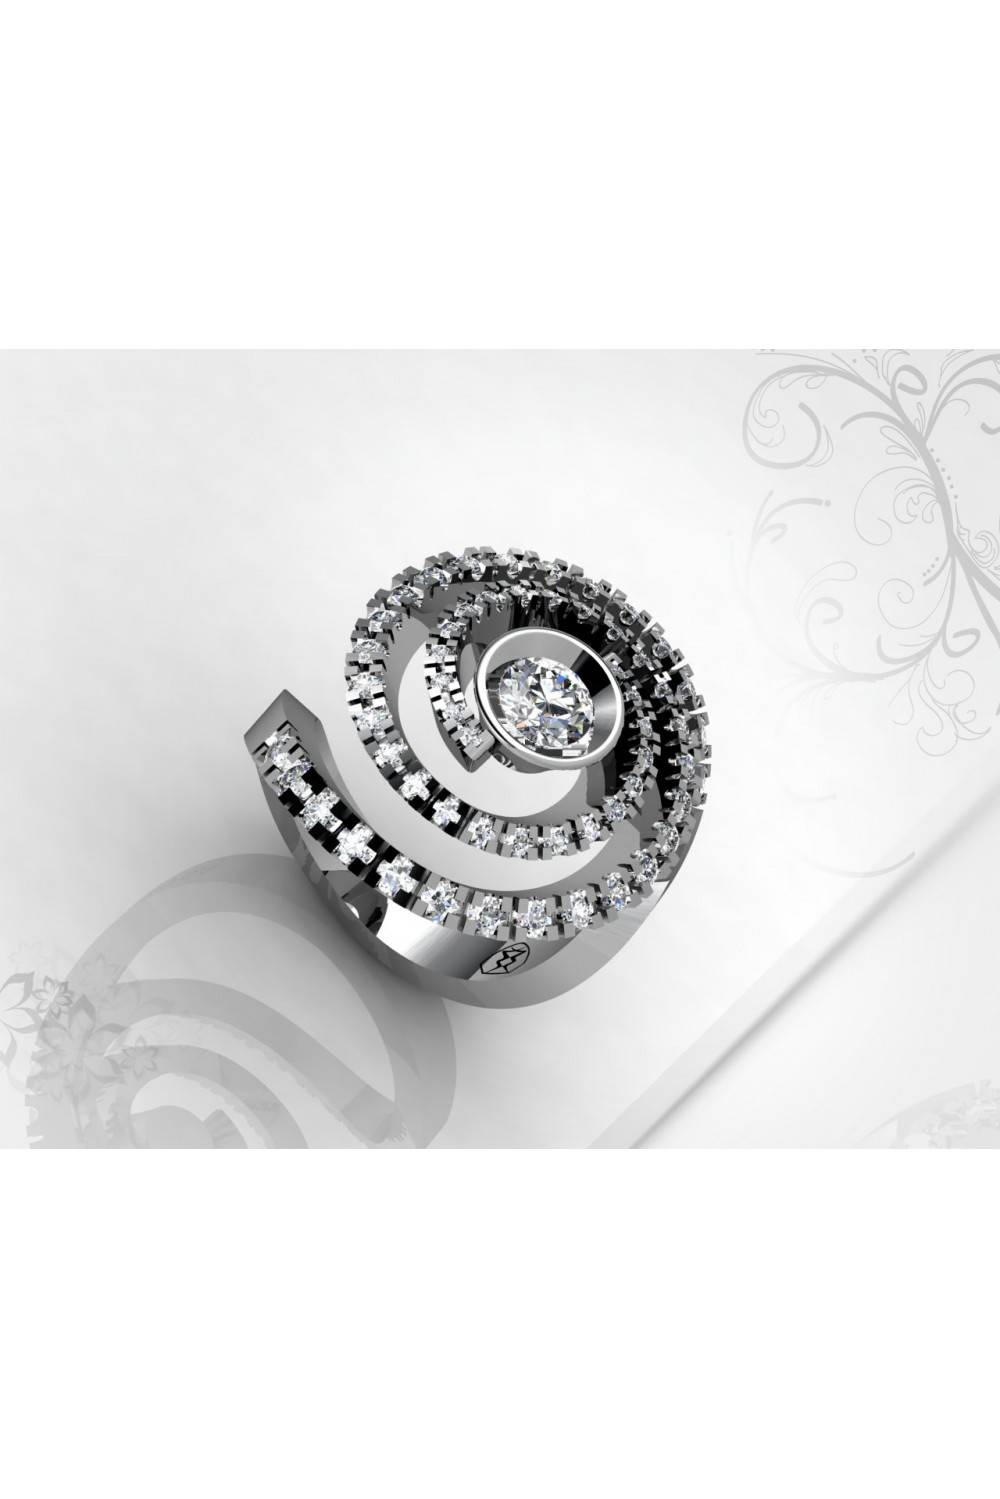 Spiral Shaped 0.22ct Diamond Ring With 46 Brilliants In Spiral Engagement Rings (Gallery 13 of 15)